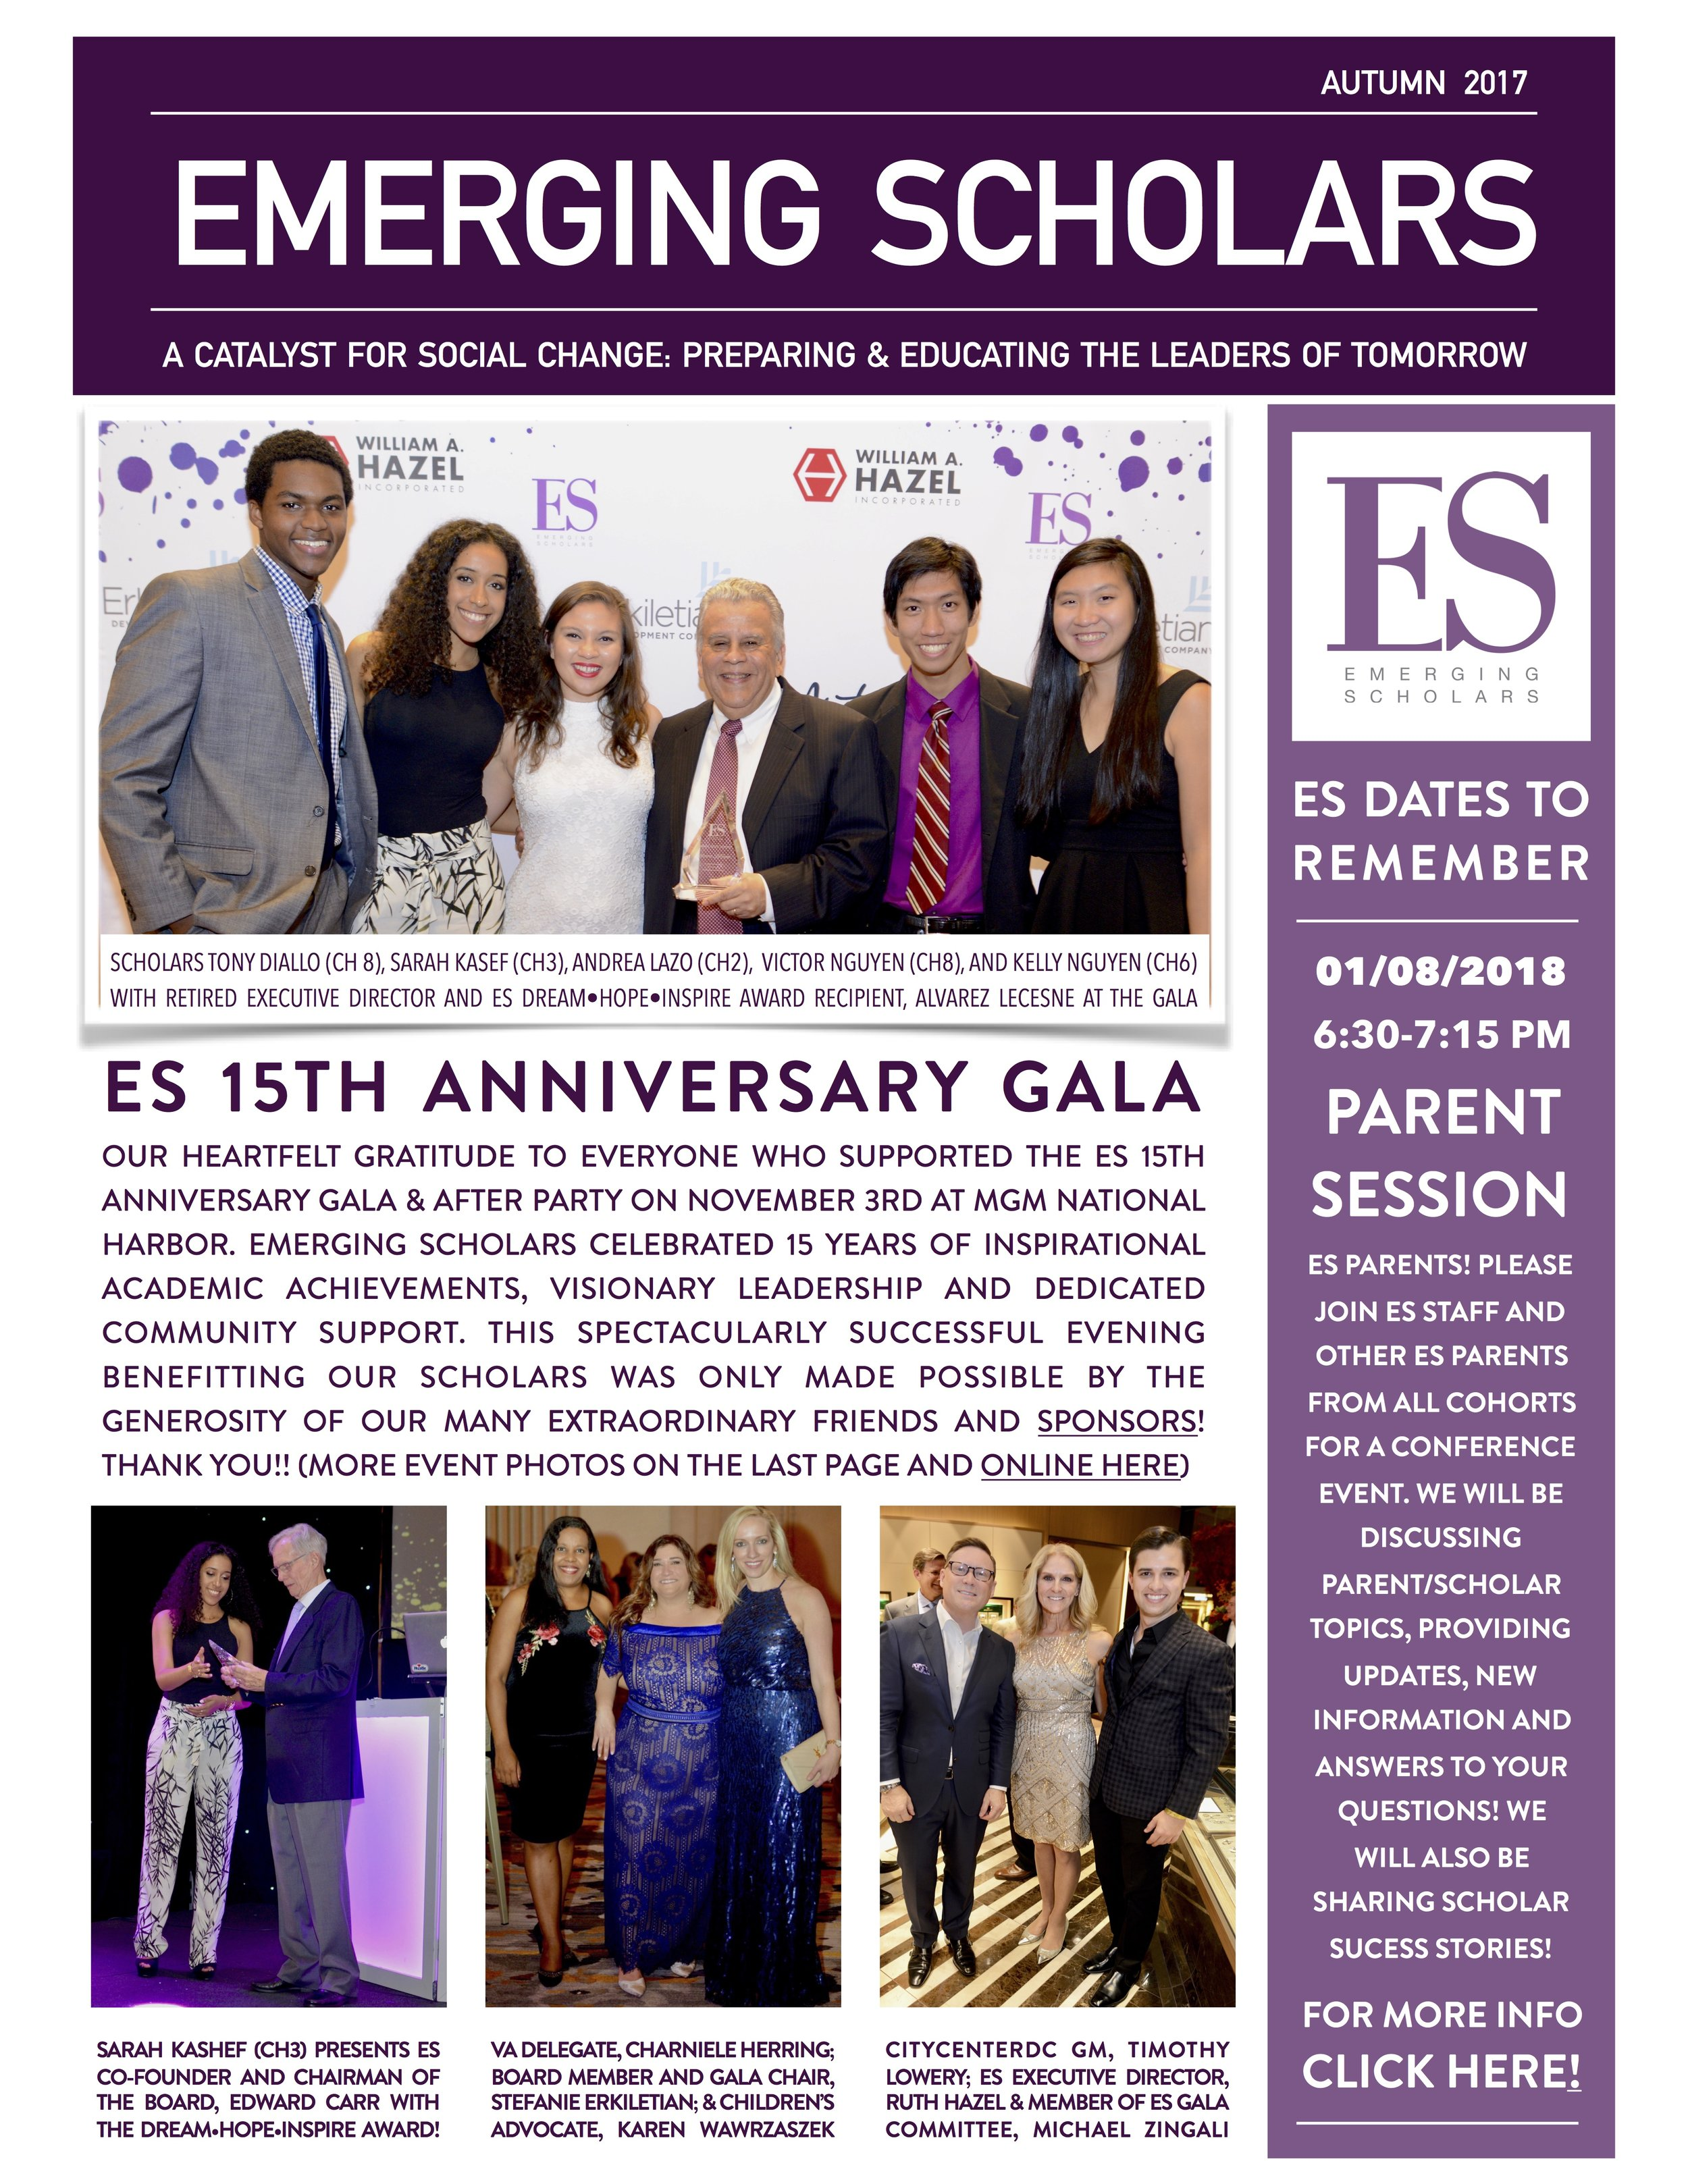 ES AUTUMN 2017 NEWSLETTER.jpg